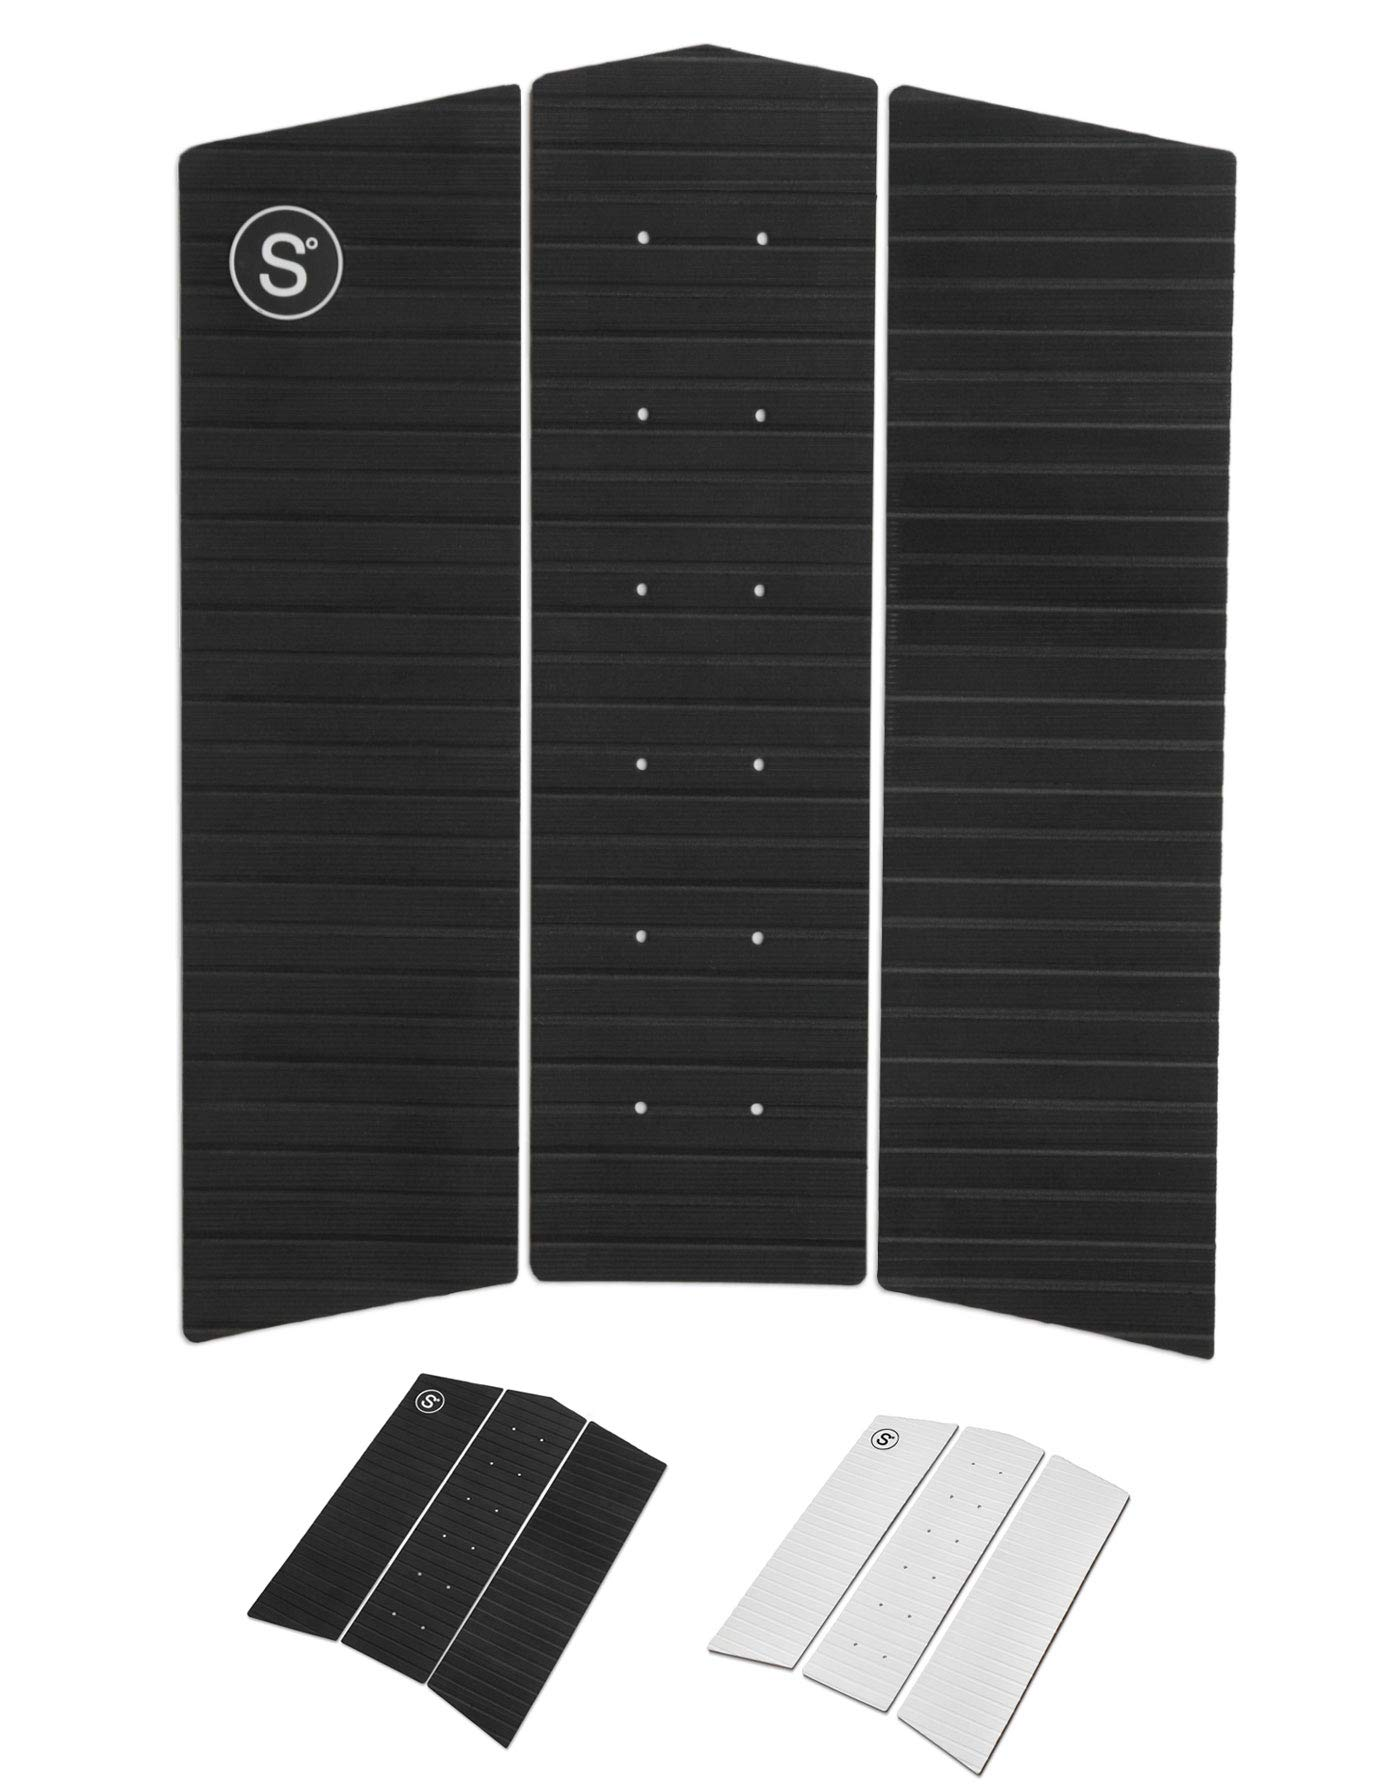 SYMPL Surfboard Front Traction Pad • 3 Pieces • Maximum Grip, 3M Adhesive for Surfboard, Skimboard, Longboard by SYMPL